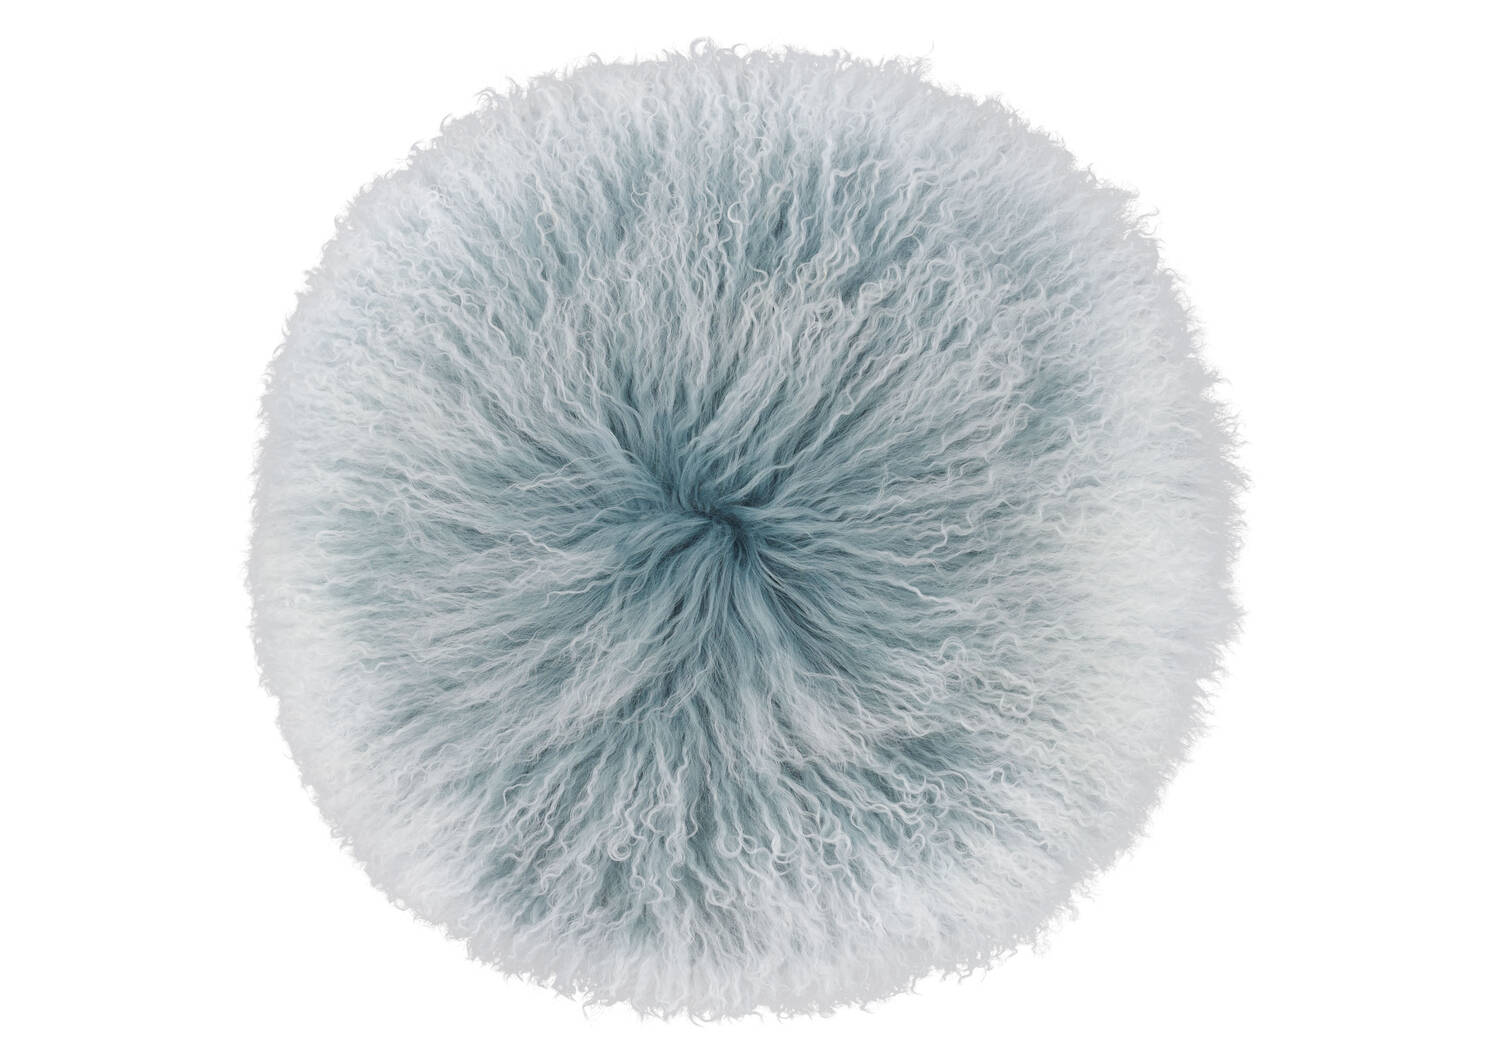 Mongolian Snowy Round Toss 16x16 Pacific